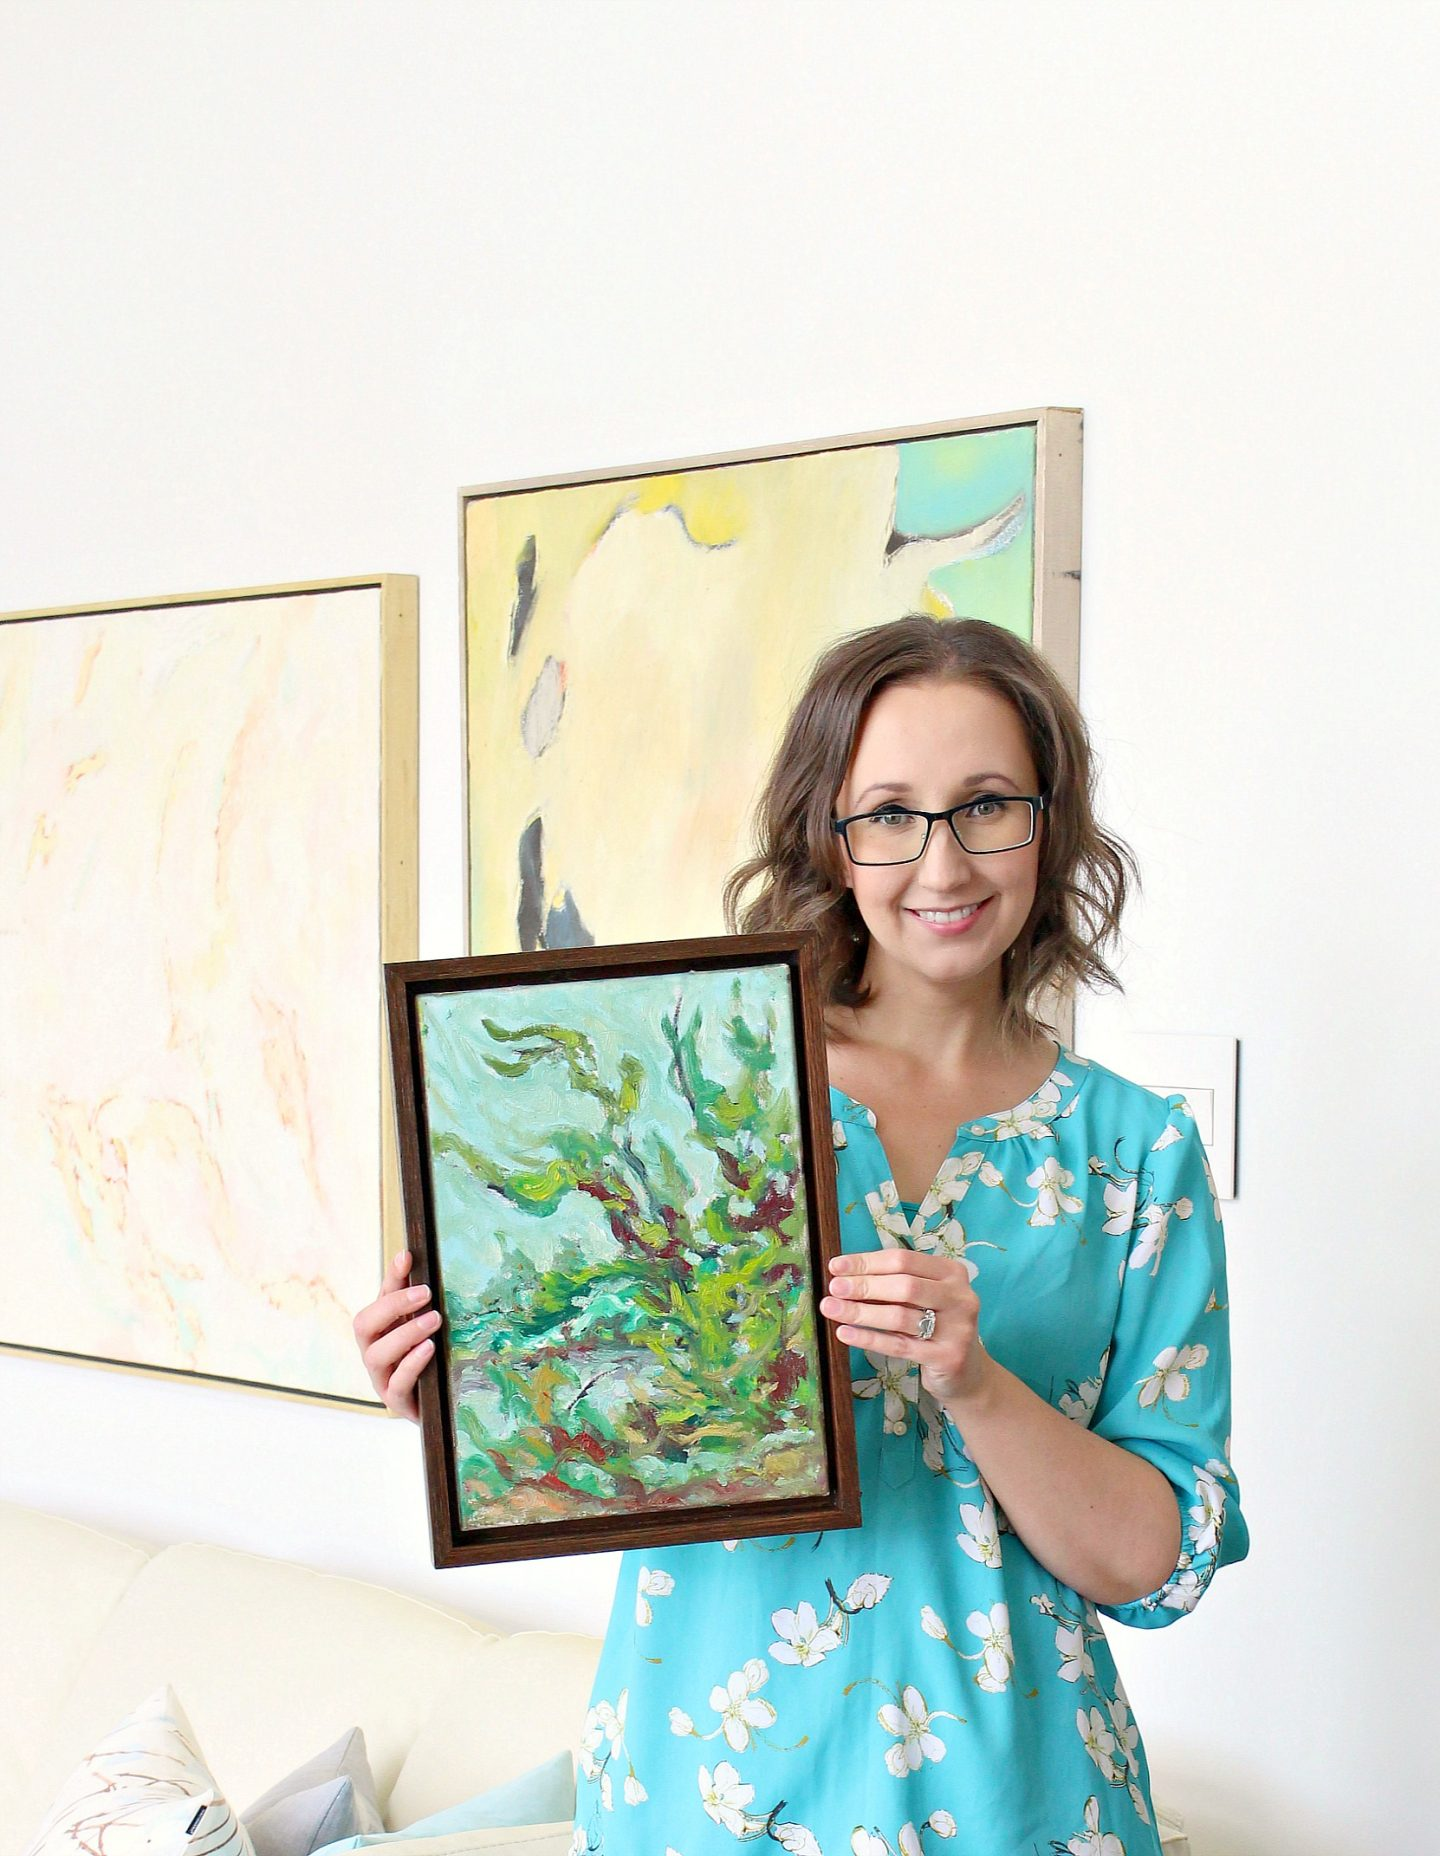 How to Build an Easy DIY Floating Frame for Art